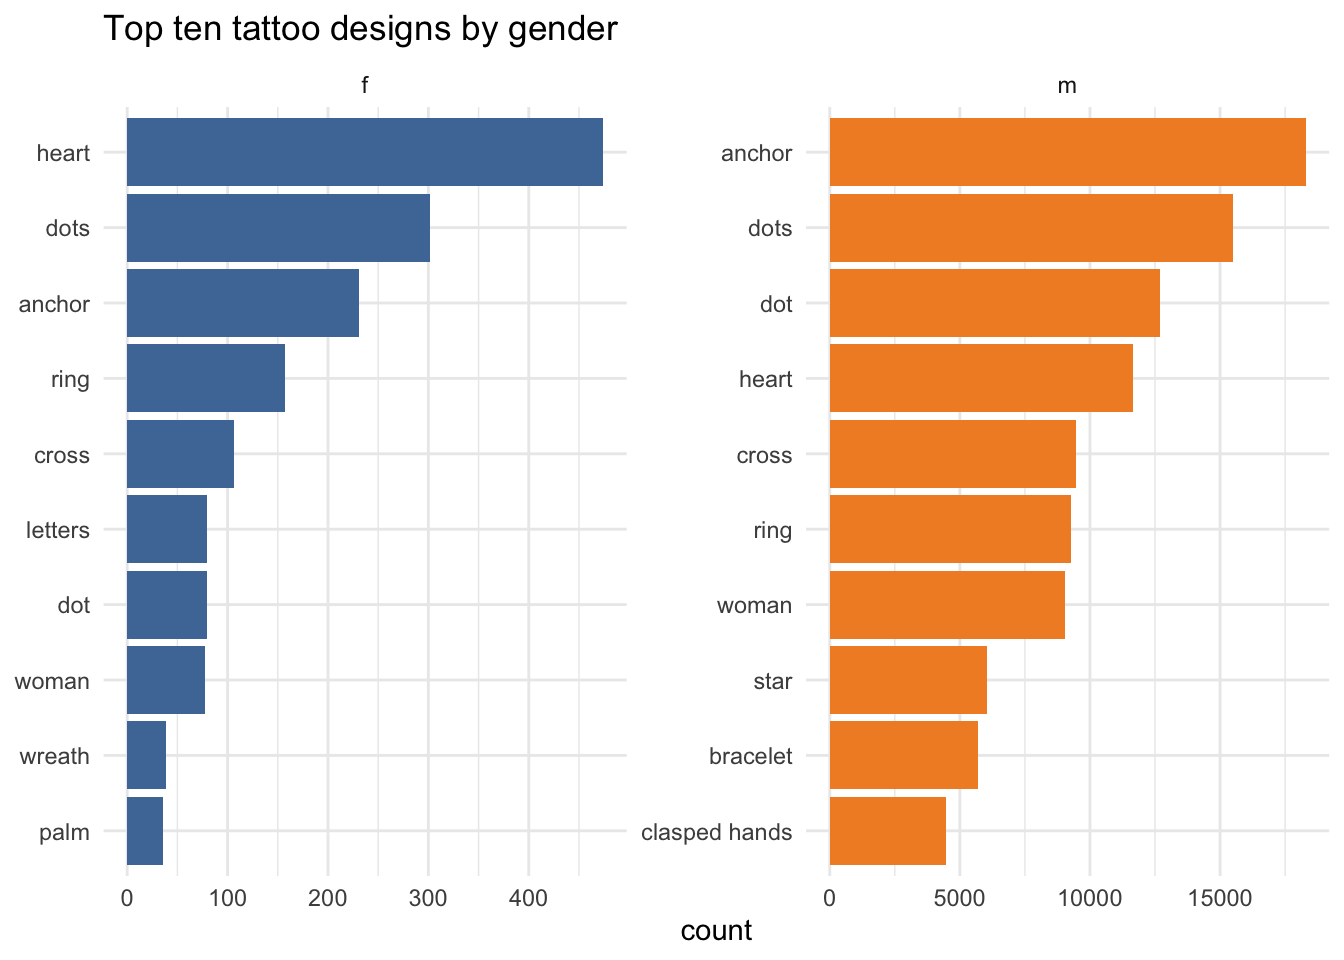 """Horizontal bar charts comparing the most popular tattoo designs for men and women. The top design for men is """"anchor"""" and """"heart"""" for women."""